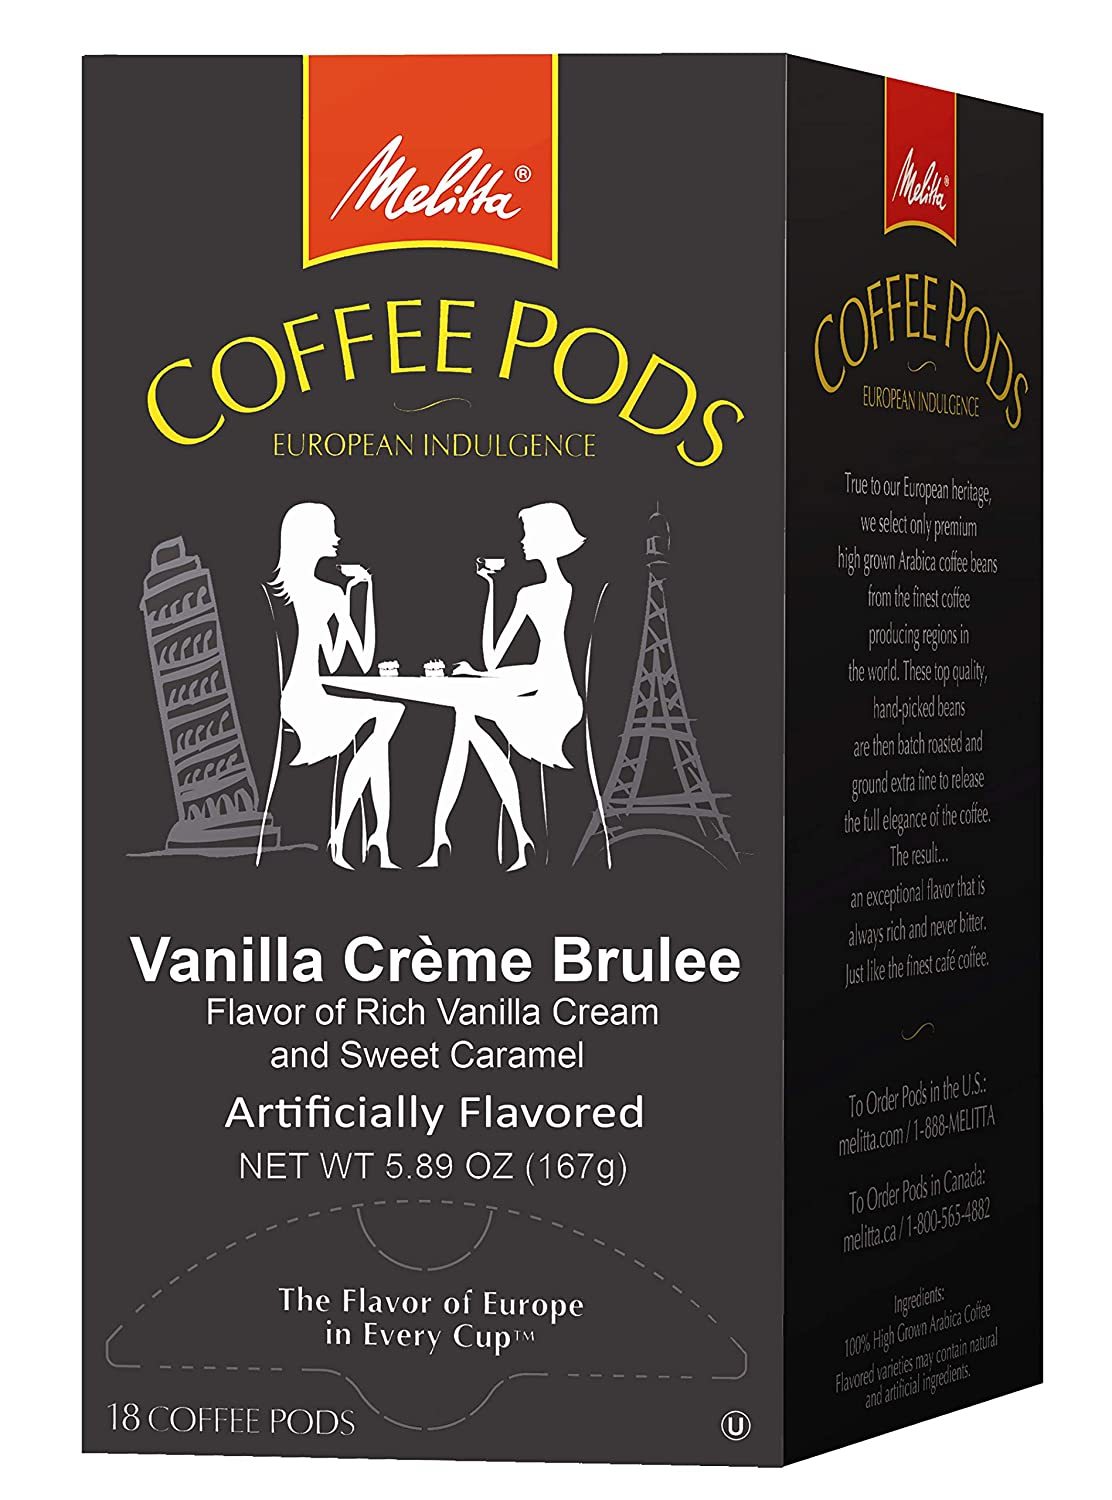 Melitta Coffee Pods, Vanilla Crème Brulee Flavored Coffee, Medium Roast, Single Cup, 18 Count (Pack of 4)